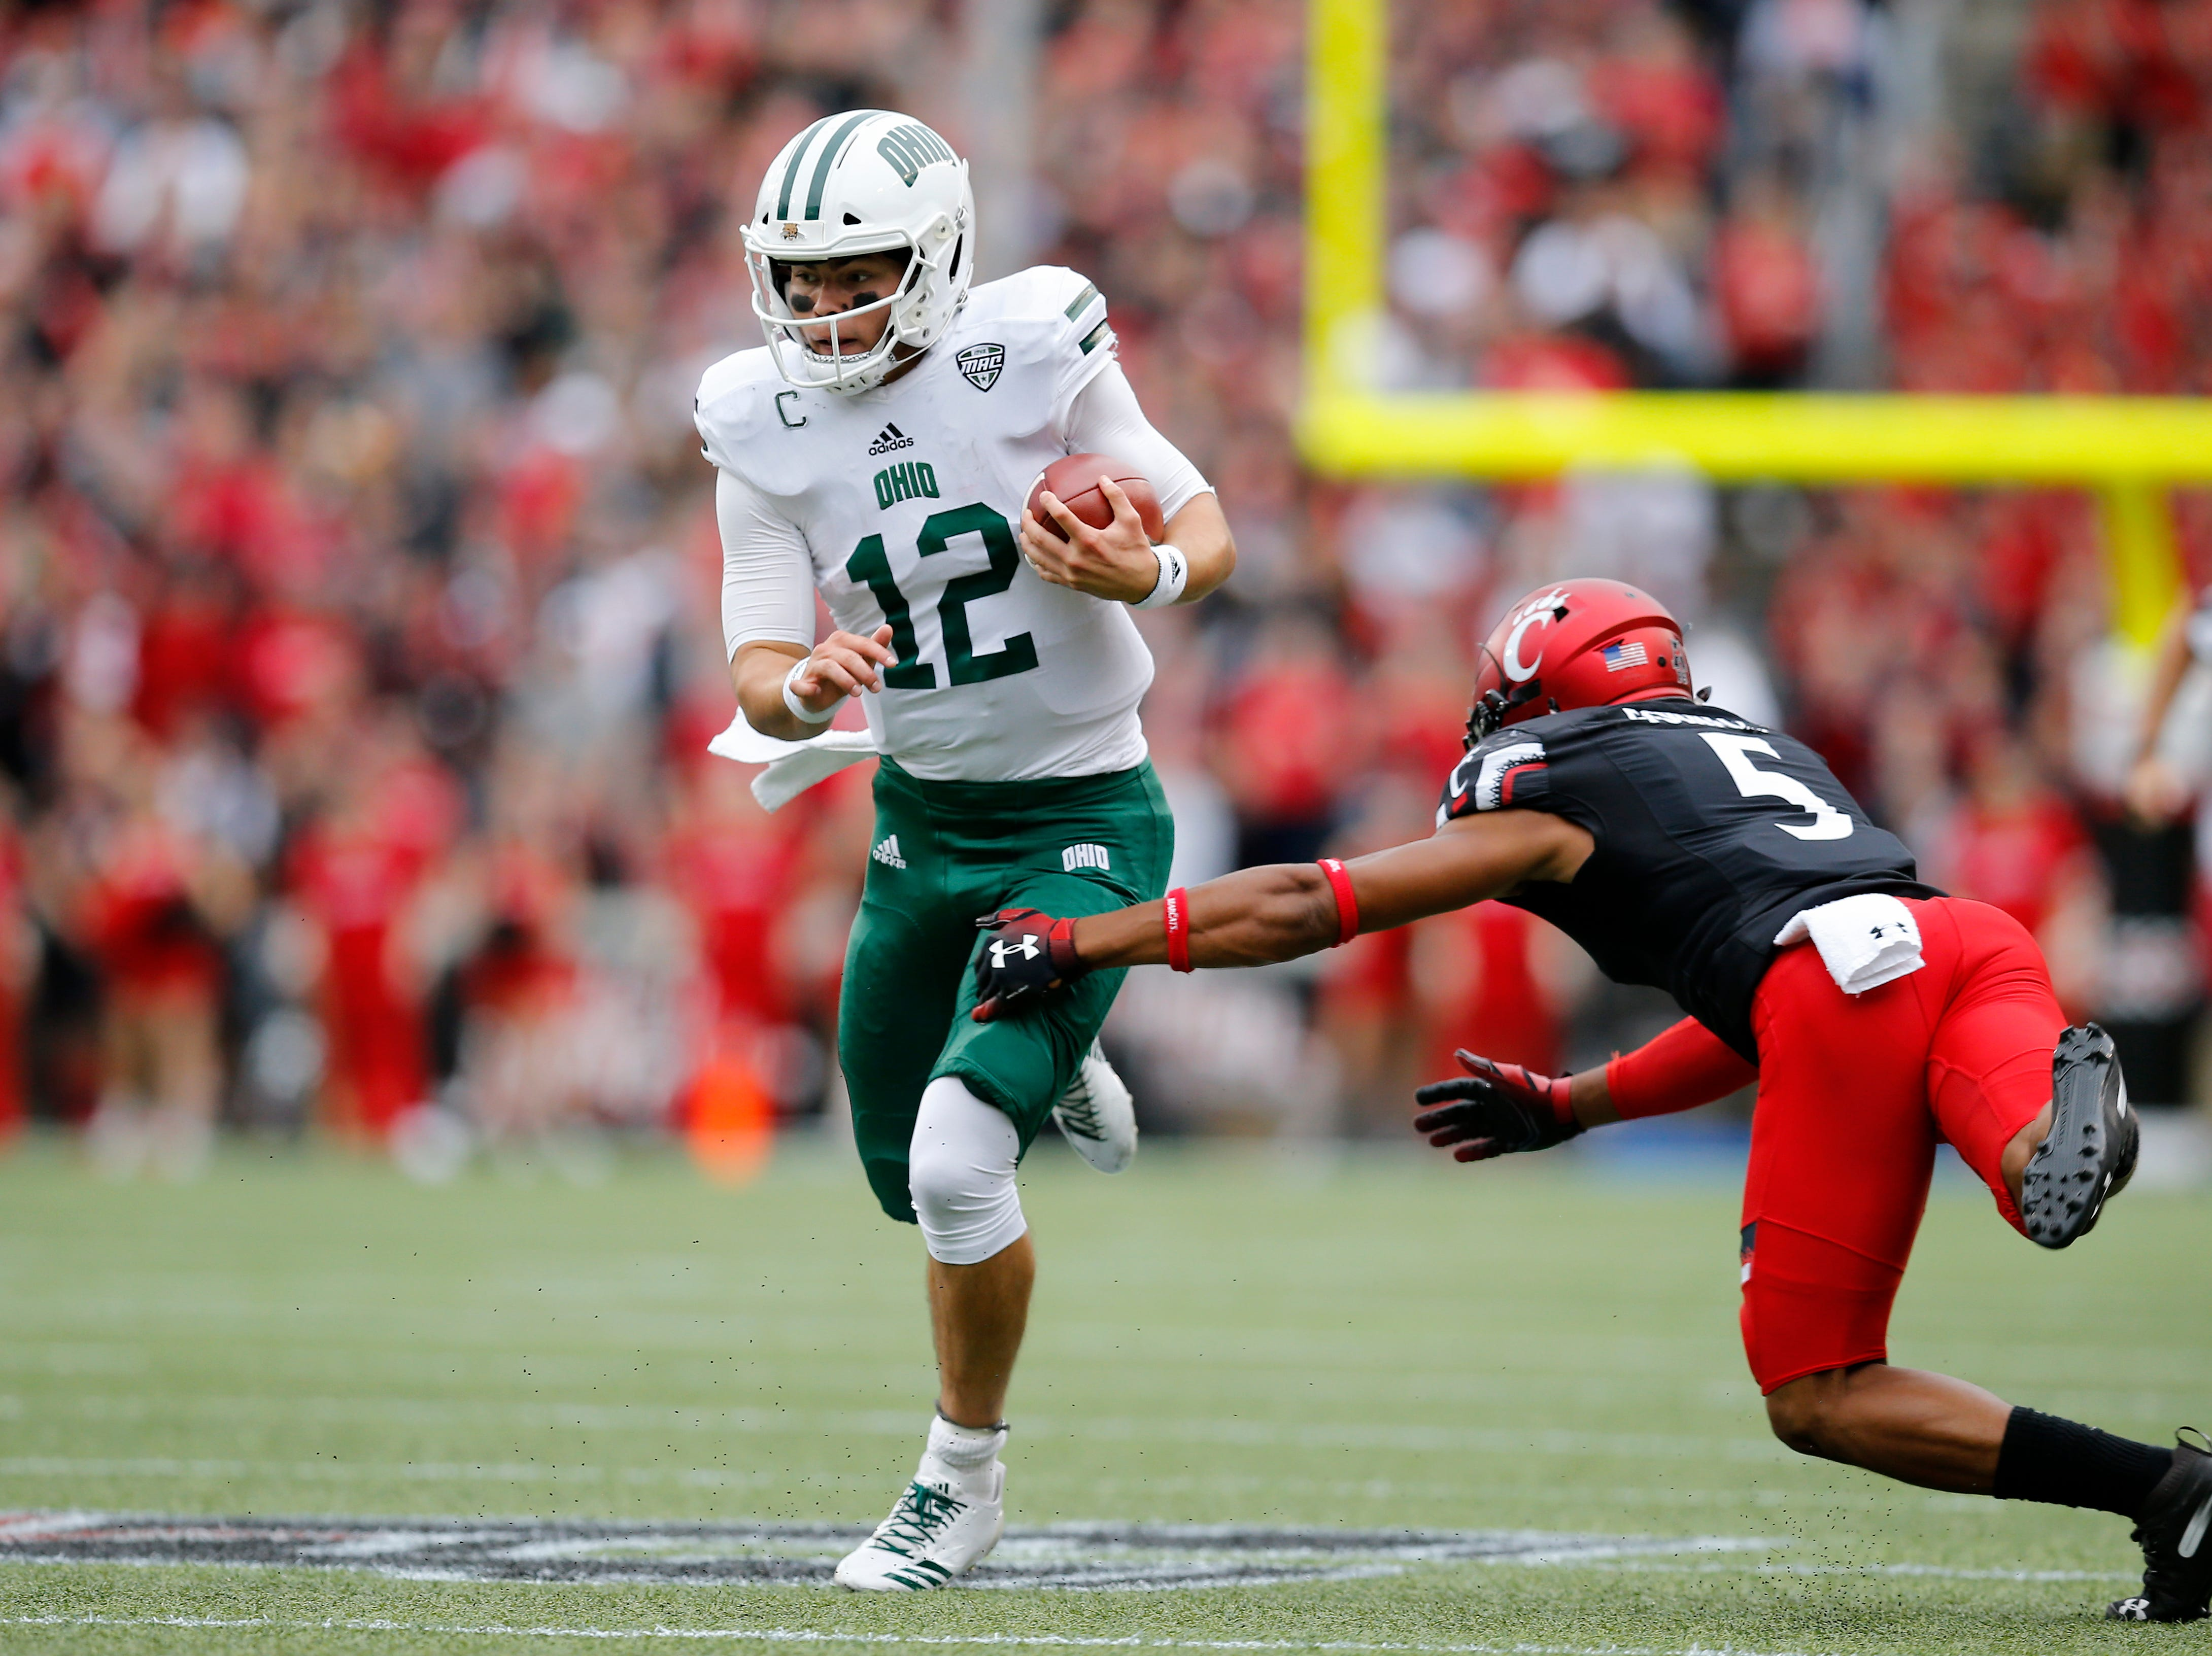 Ohio Bobcats quarterback Nathan Rourke (12) breaks a tackle from Cincinnati Bearcats safety Darrick Forrest (5) on a keeper in the first quarter of the NCAA football game between the Cincinnati Bearcats and the Ohio Bobcats at Nippert Stadium on the University of Cincinnati campus in Cincinnati on Saturday, Sept. 22, 2018. The Bobcats led 24-7 at halftime.